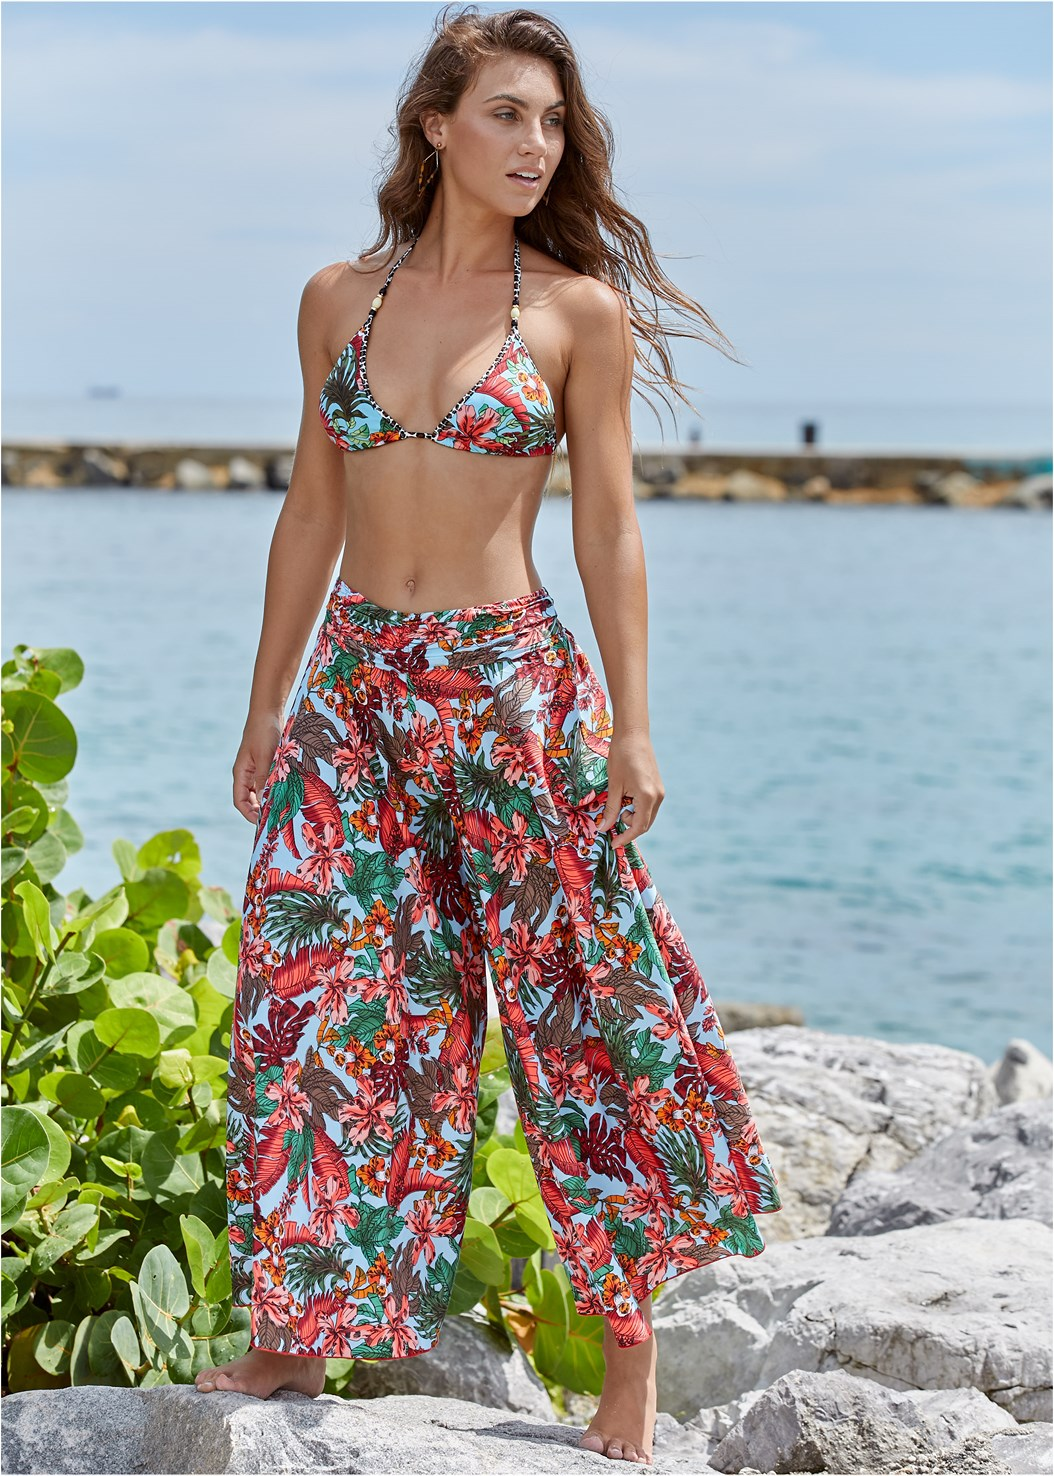 Cover-Up Pants,Beaded Triangle Top,Underwire Bra Top,Underwire Halter Top,Strappy Side Bikini Bottom,Loop Tie Side Bottom,Banded Moderate Bottom